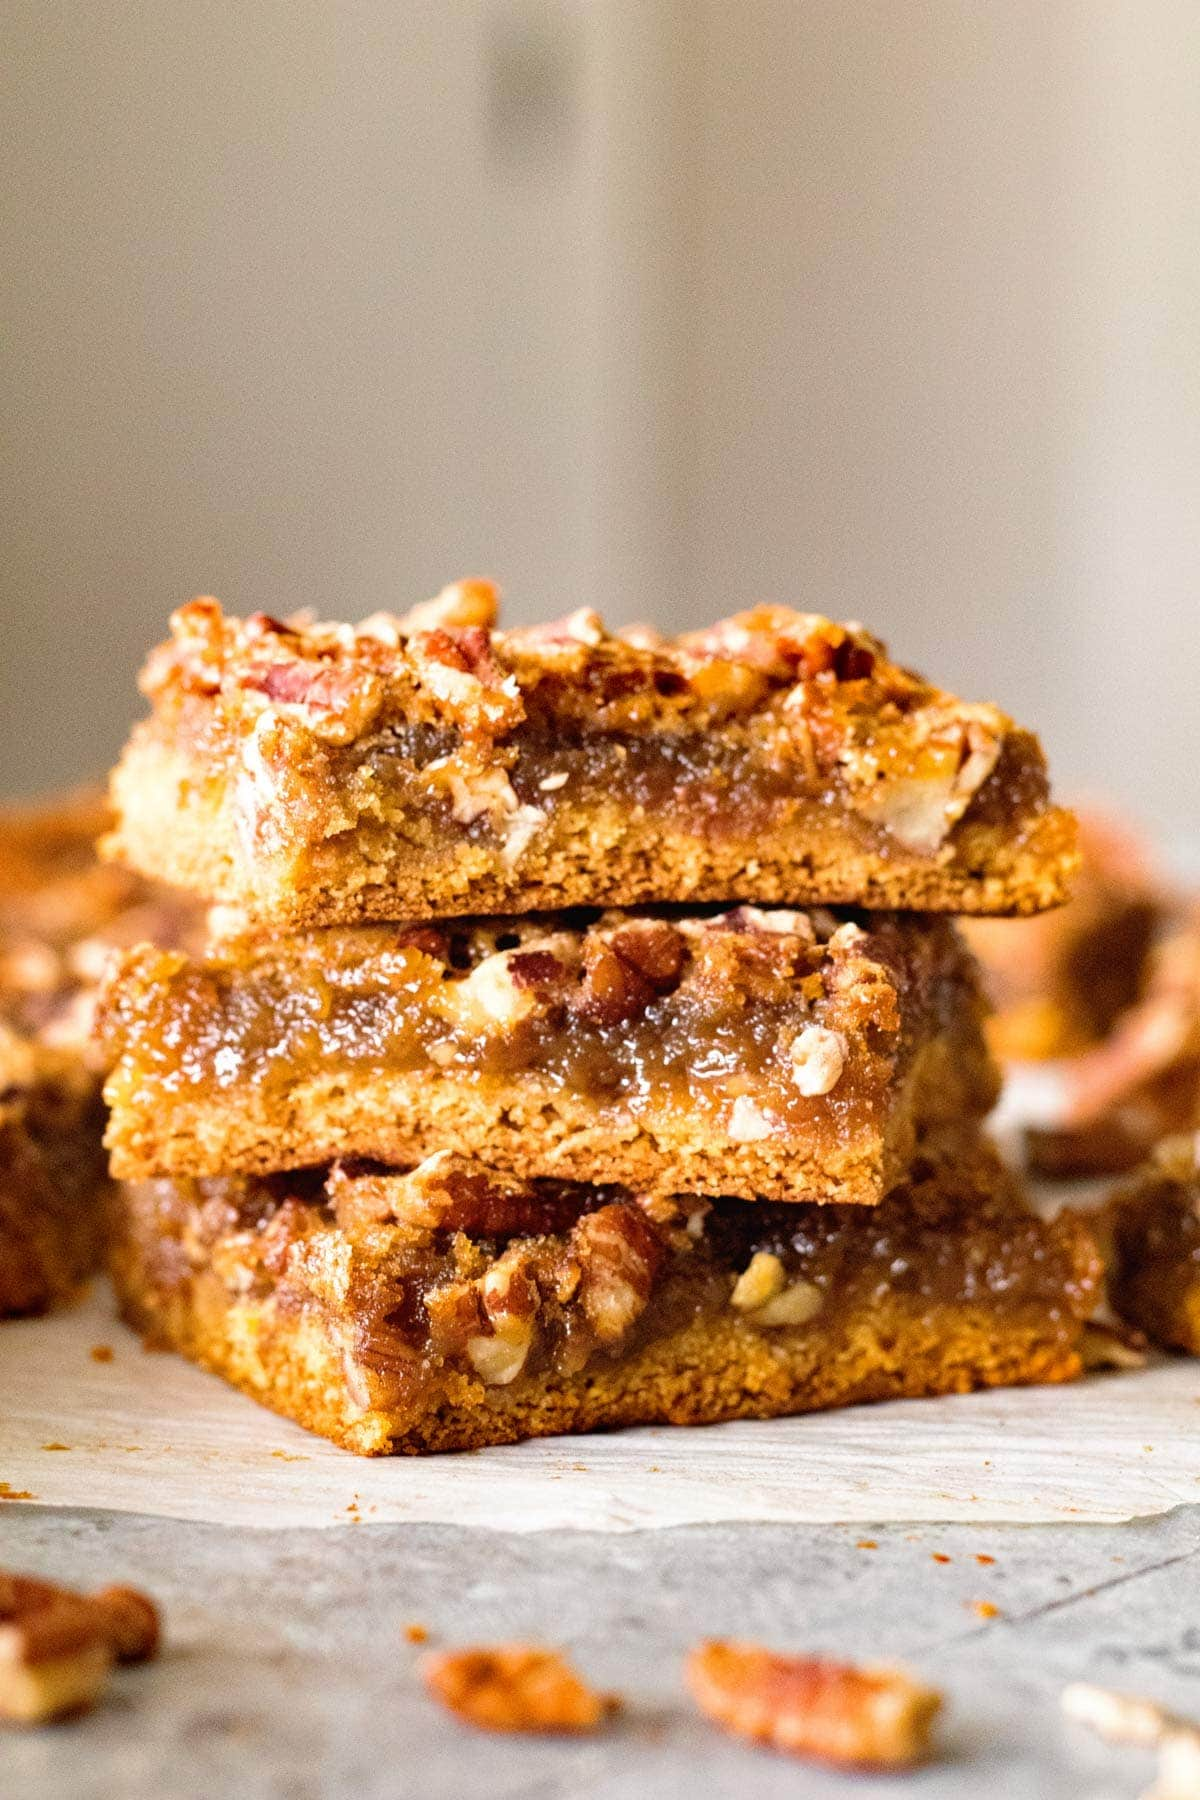 Easy Pecan Pie Bars ~ Delicious, Buttery Pecan Pie Bar Recipe with a Cake Mix Crust, Gooey Middle and Loaded with Pecans! This Recipe Will Be Your New Favorite For the Holidays!